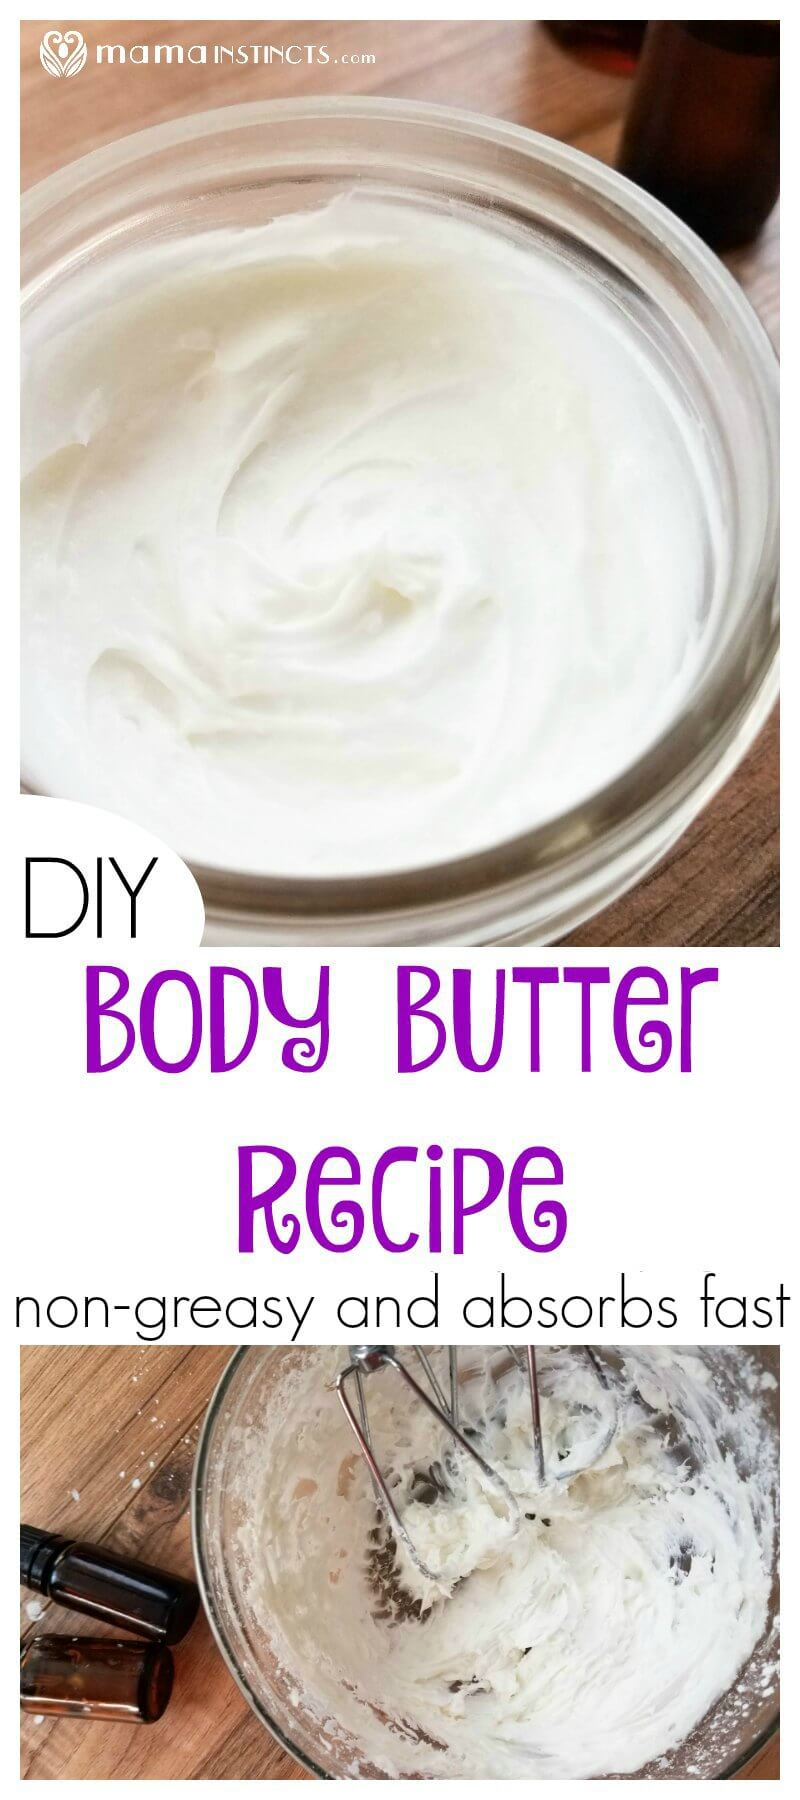 Are you tired of greasy body butters? Try this DIY body butter recipe. It absorbs really fast and doesn't leave a greasy residue. Perfect for your morning beauty routine.